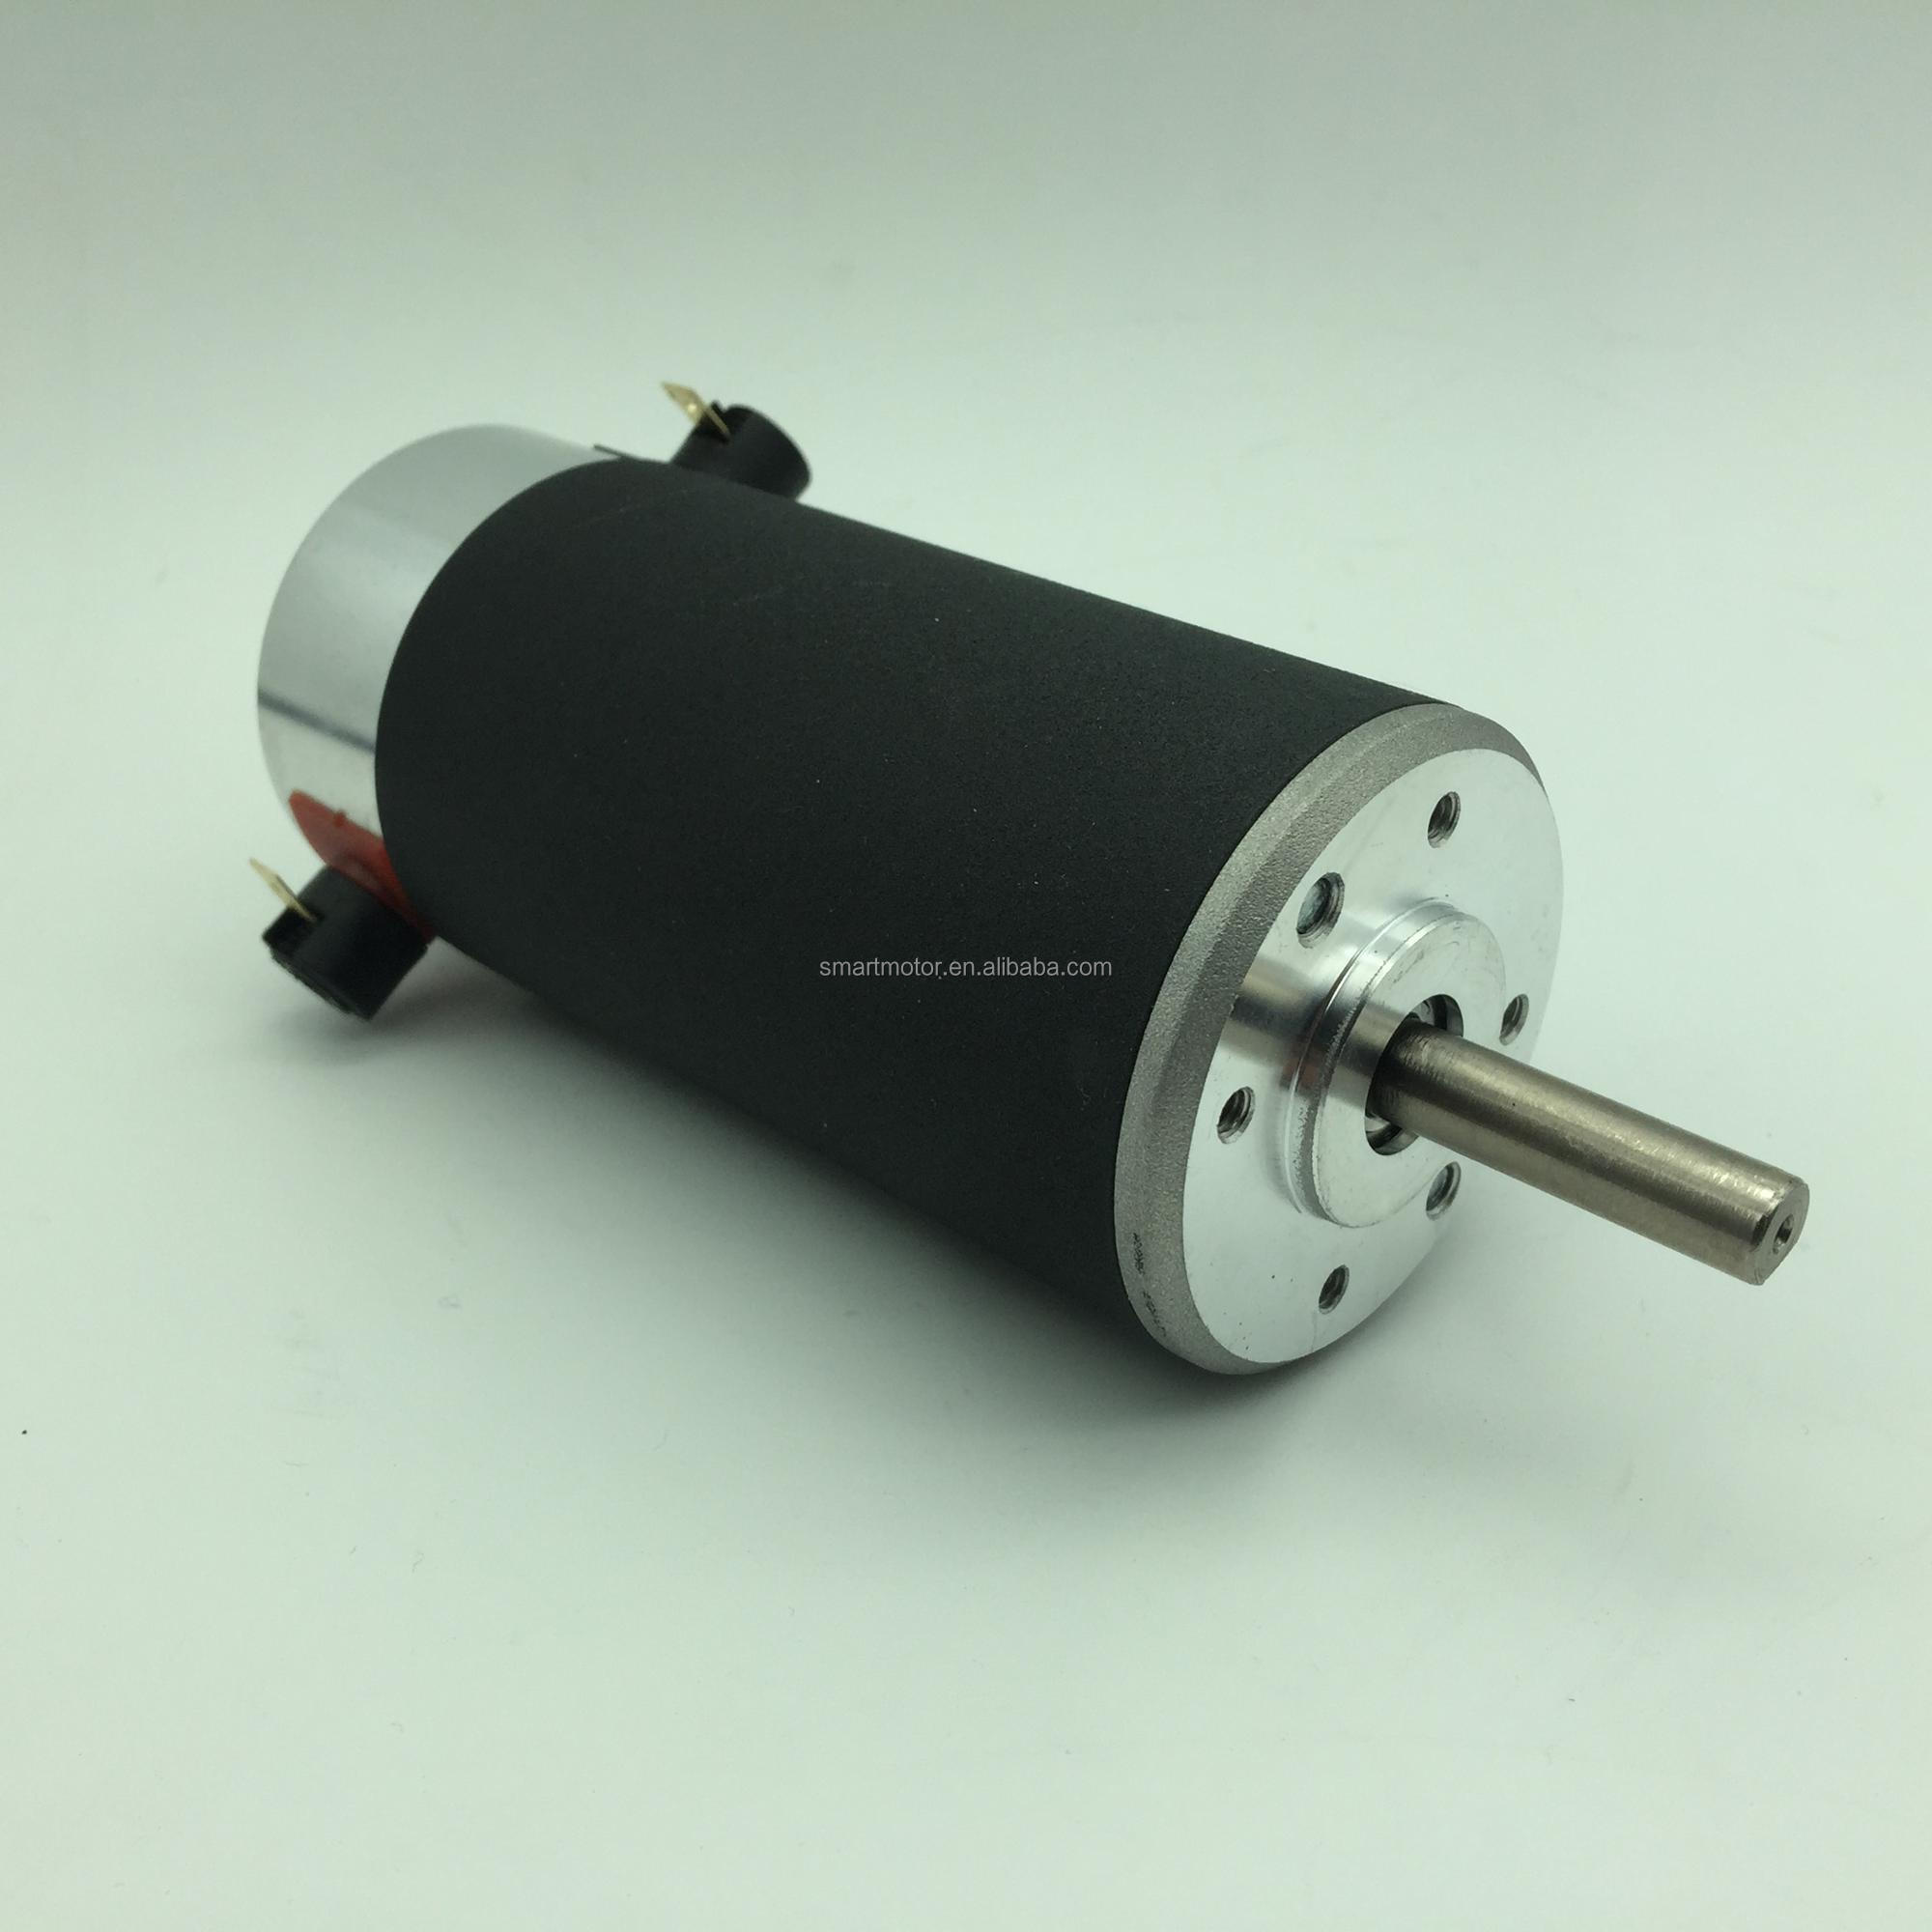 O.D 54mm Brushed Dc Servo Motor, equivalent to PITTMAN Motor